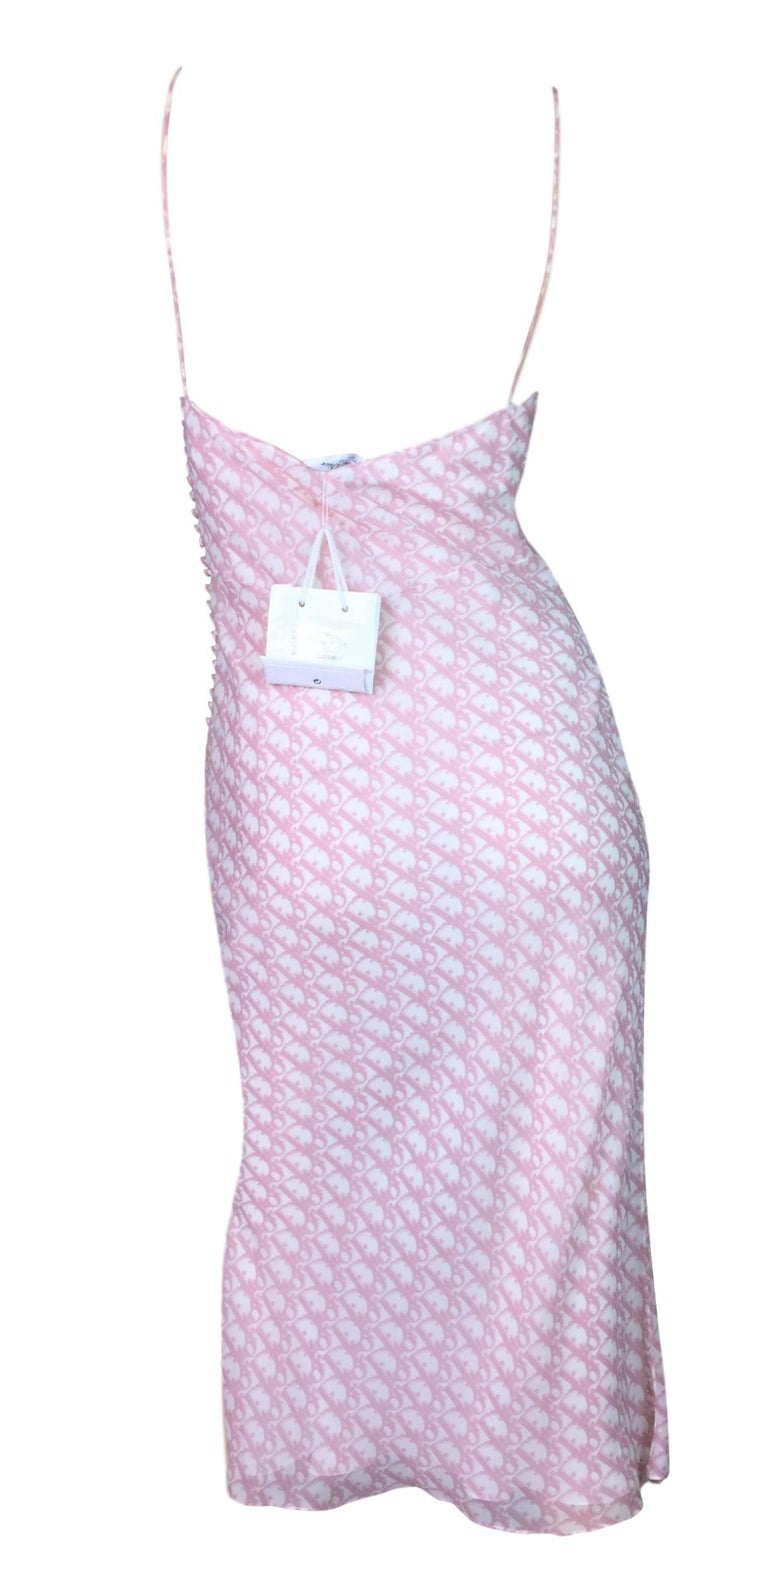 Gray NWT S/S 2004 Christian Dior John Galliano Pink Monogram Logo Silk Tie Dress